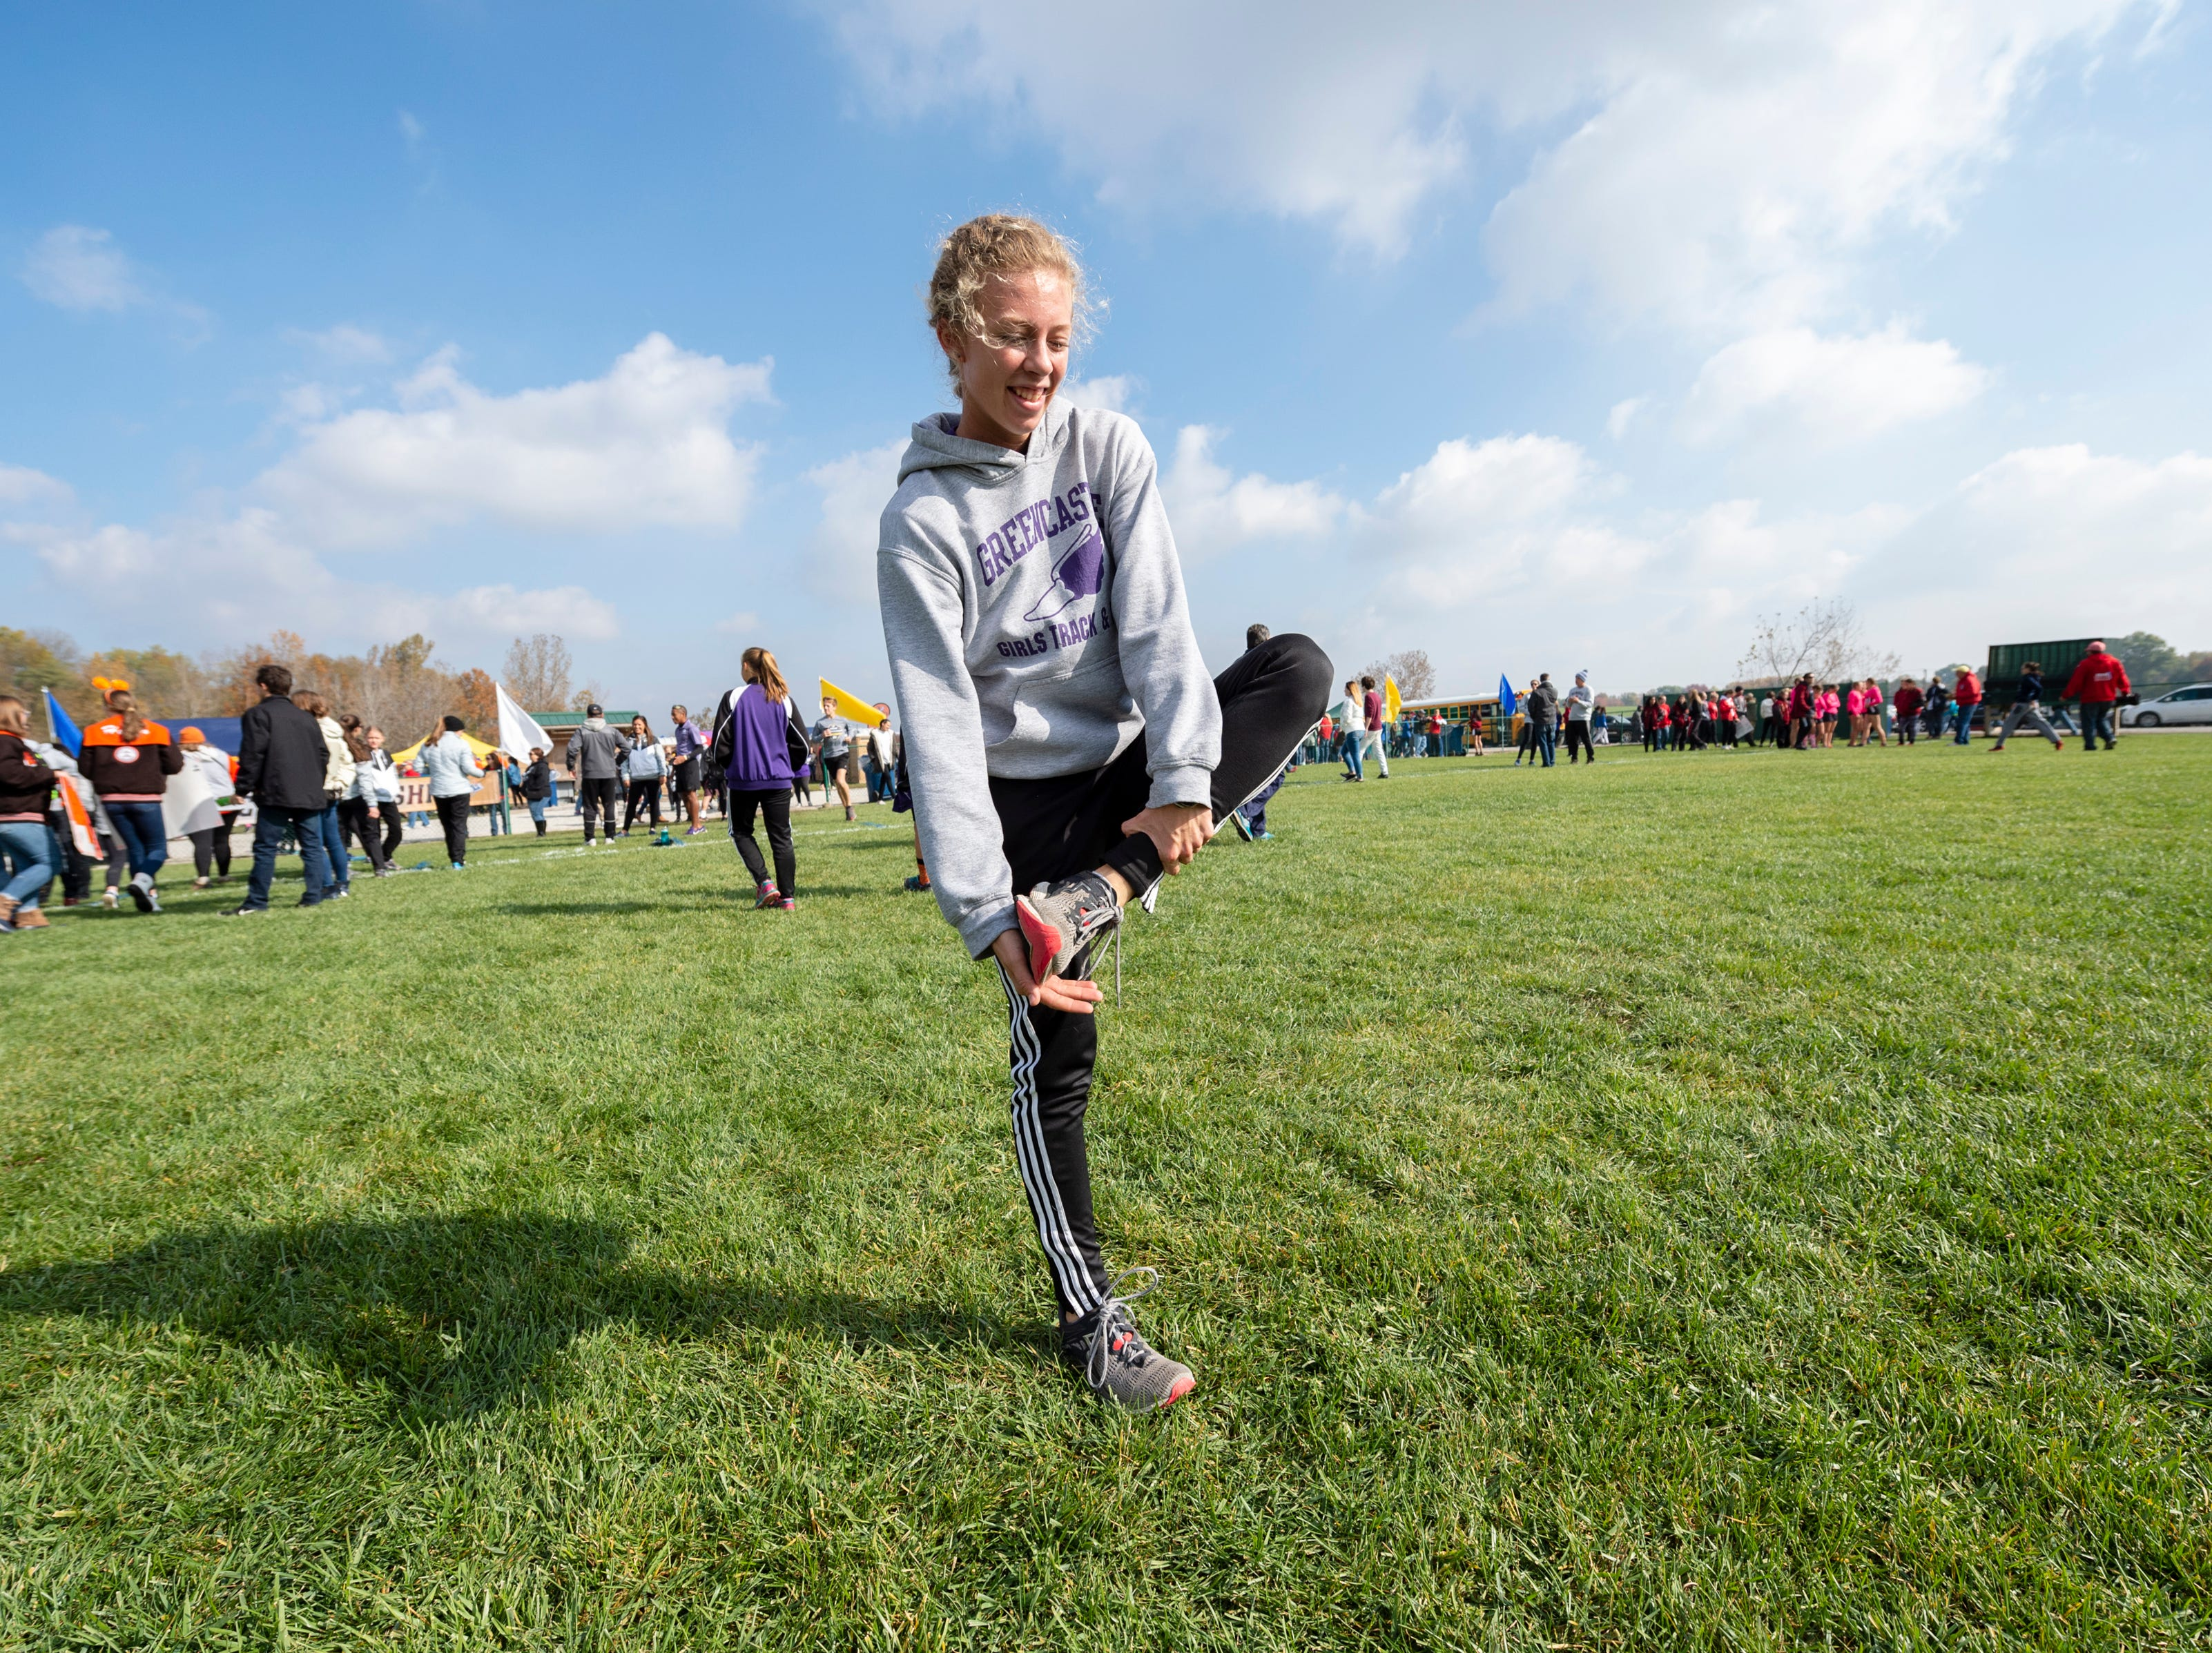 Greencastle High School runner Emma Wilson warm-up before the running of the IHSAA Boys' and Girls' Cross Country State Finals meet Saturday, Oct. 27, 2018, at The Lavern Gibson Championship Cross Country Course at Terre Haute.